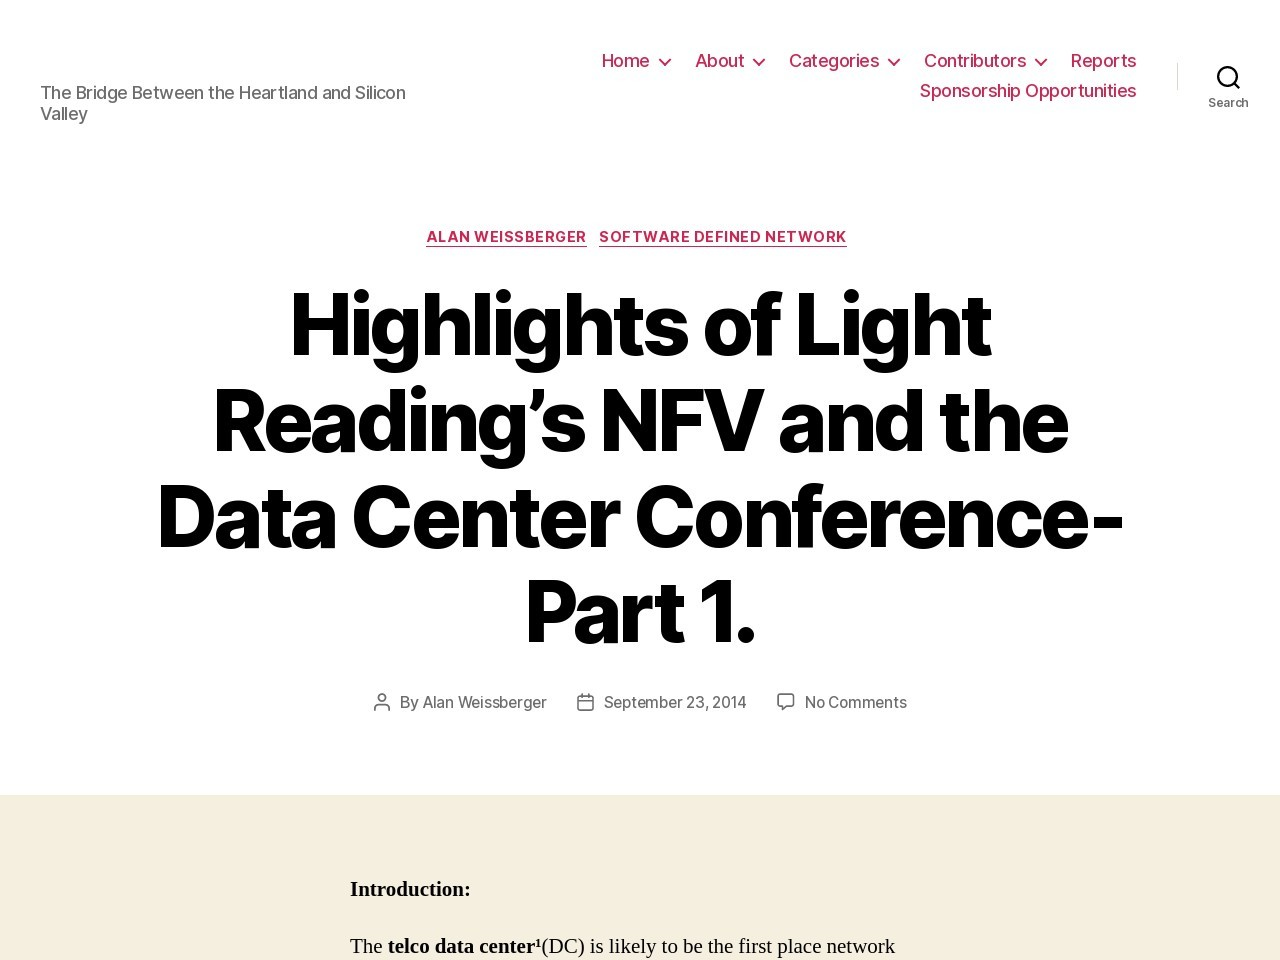 Highlights of Light Reading's NFV and the Data Center Conference-Part 1.